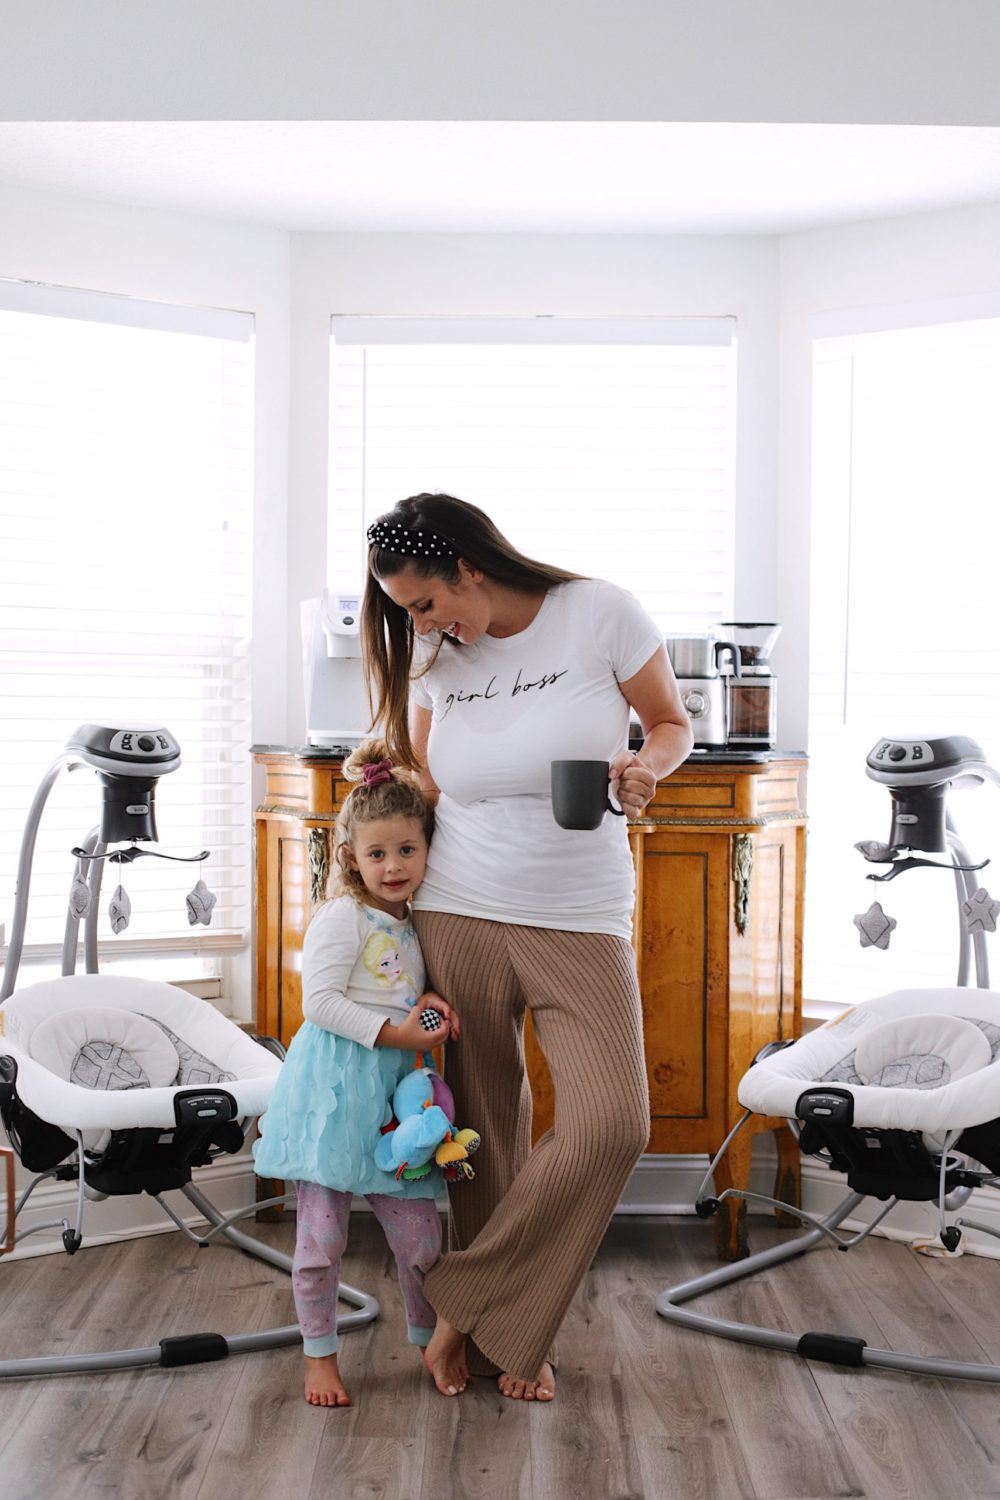 How to Survive Working With Kids at Home - Tips for making the most of working from home with kids homeschooling. Click through for tips from lifestyle blogger Tabitha Blue of Fresh Mommy Blog! | Working From Home With Kids by popular Florida lifestyle blog, Fresh Mommy Blog: image of a mom holding a cup of coffee while her young daughter hugs her leg.